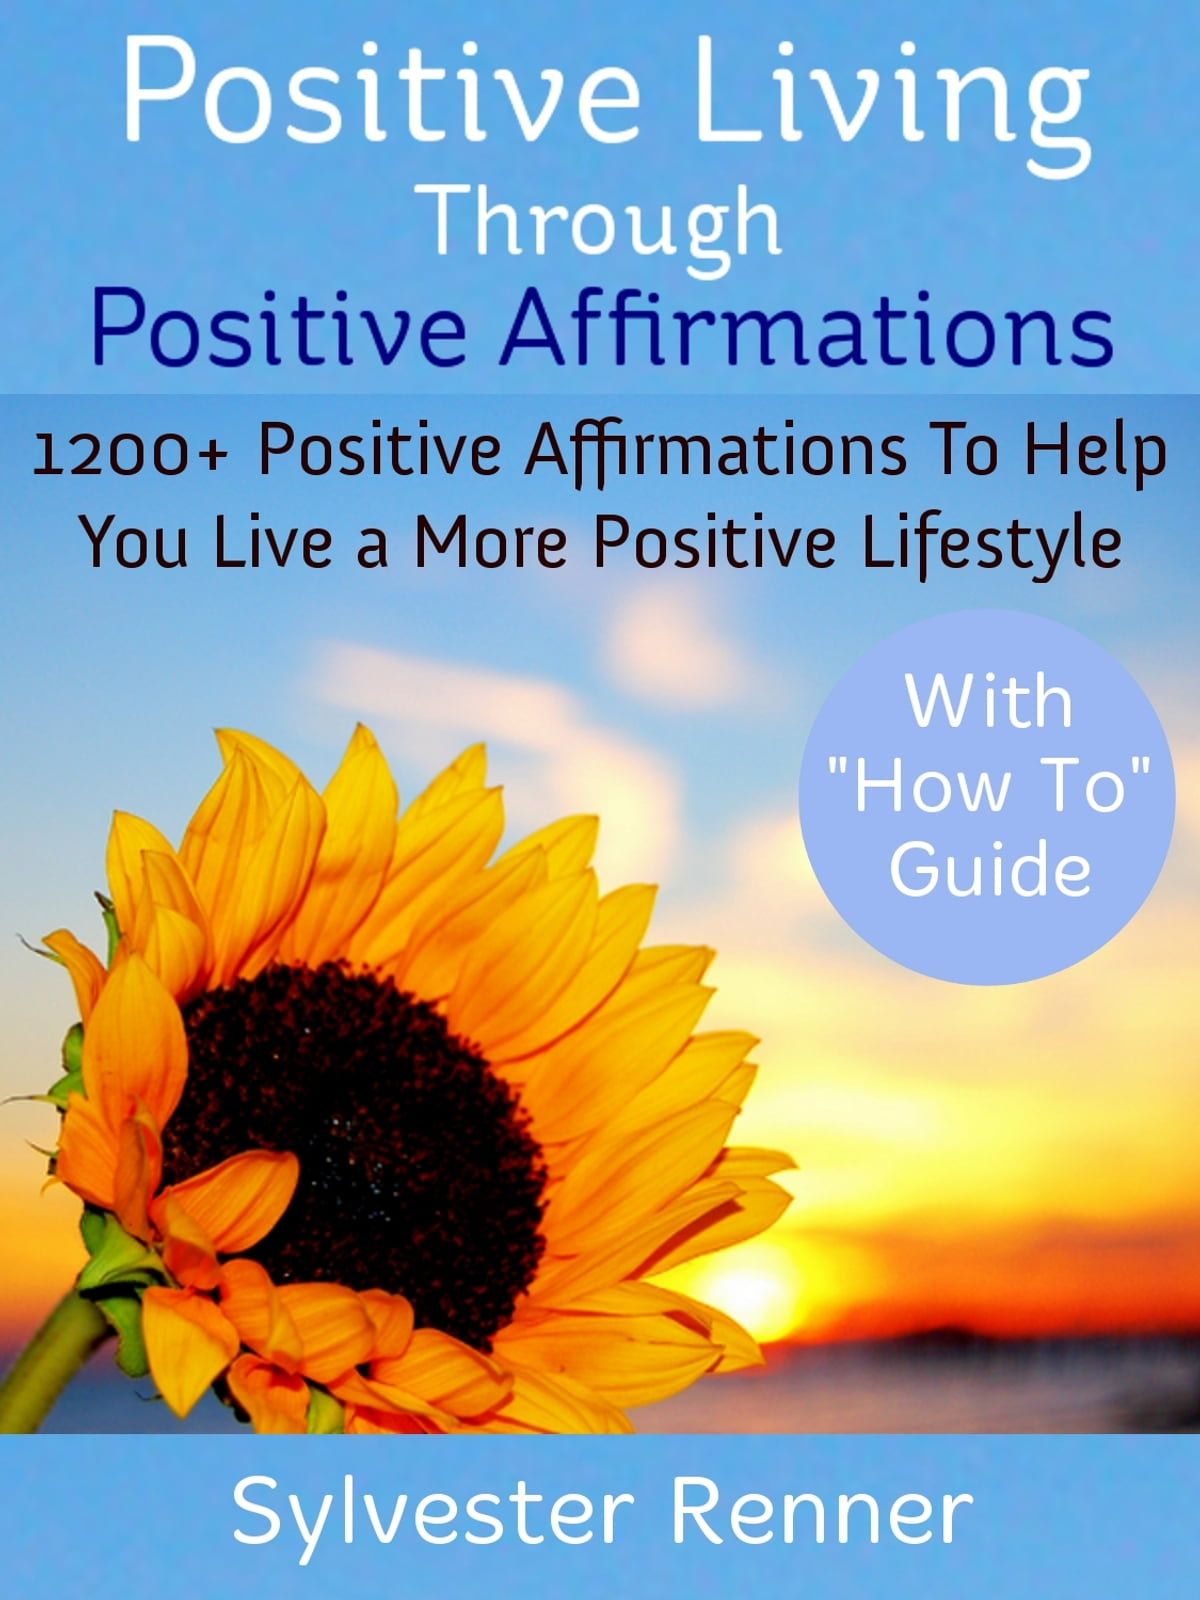 positive living through positive affirmations sylvester renner